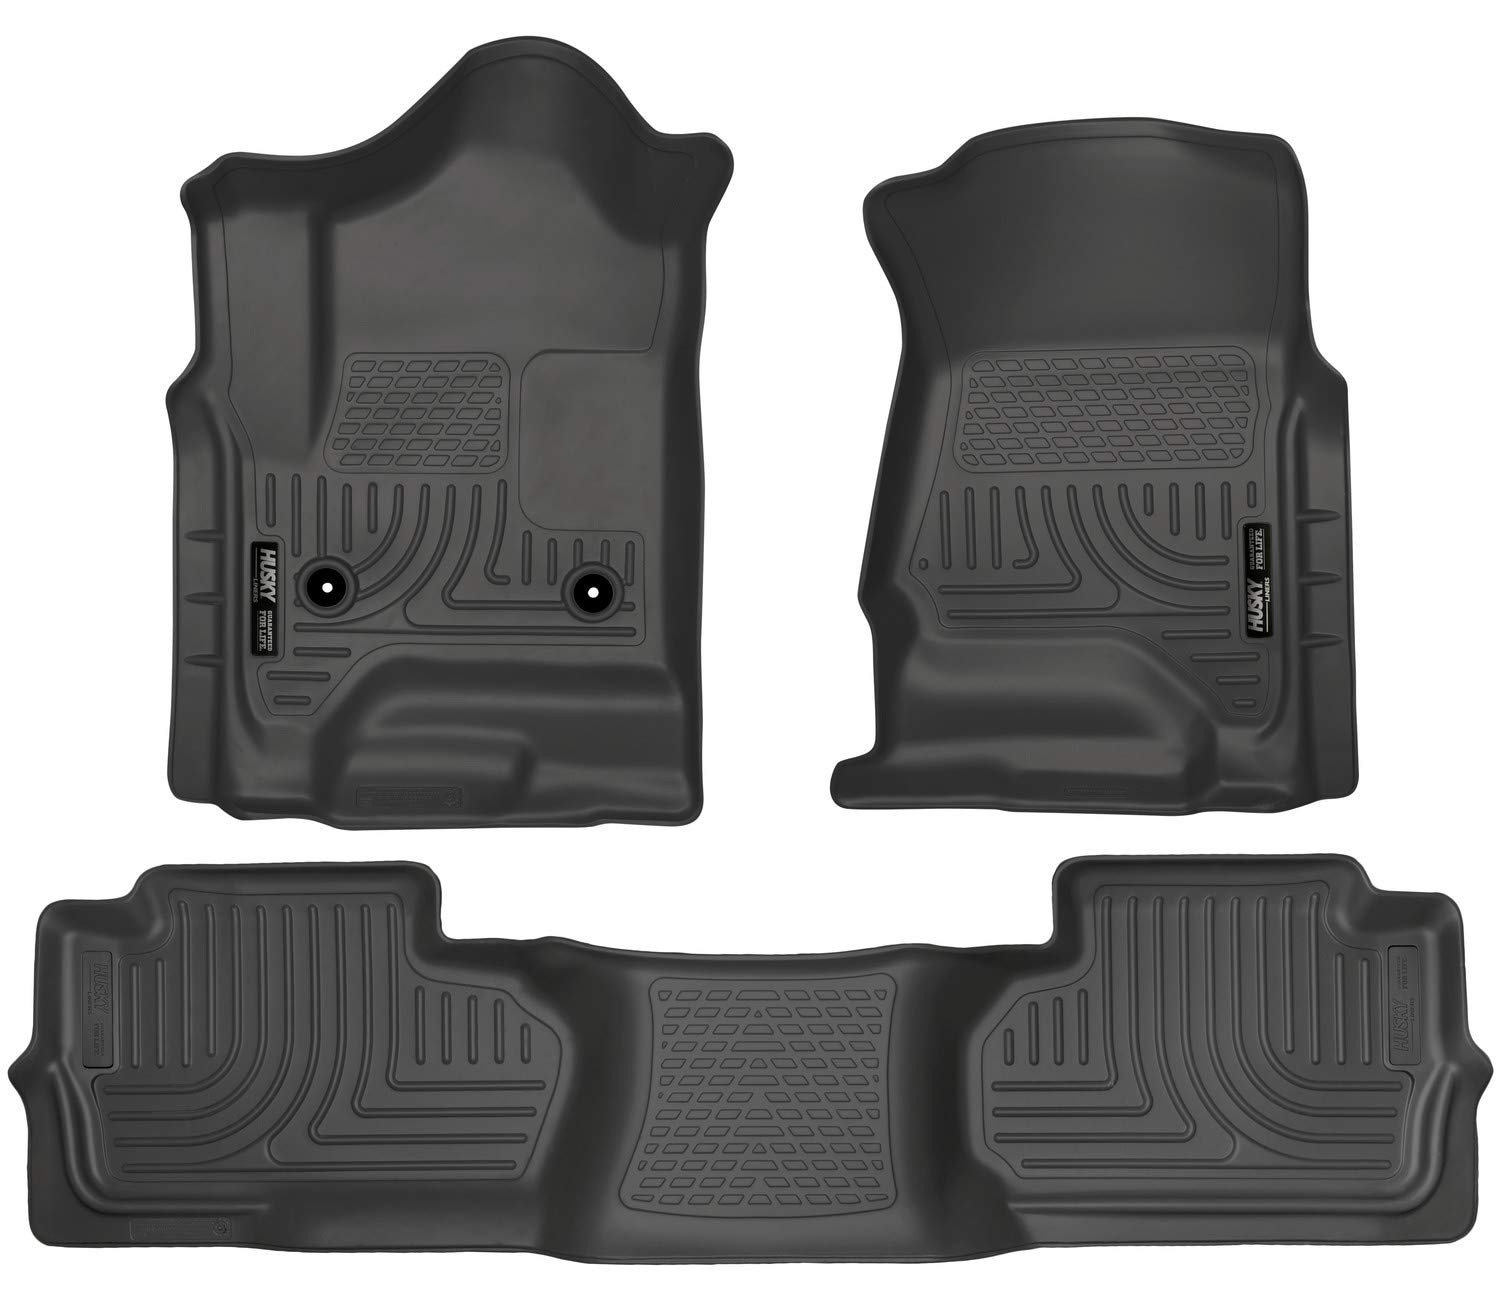 Husky Liners 98241 Black Weatherbeater Front & 2nd Seat Floor Liners Fits 2014-2018 Chevrolet-GMC Silverado/Sierra 1500 Double Cab, 2019 Chevrolet-GMC Silverado/Sierra 1500 Legacy, 2015-2019 Chevrolet Silverado 2500/3500 HD Double Cab by Husky Liners